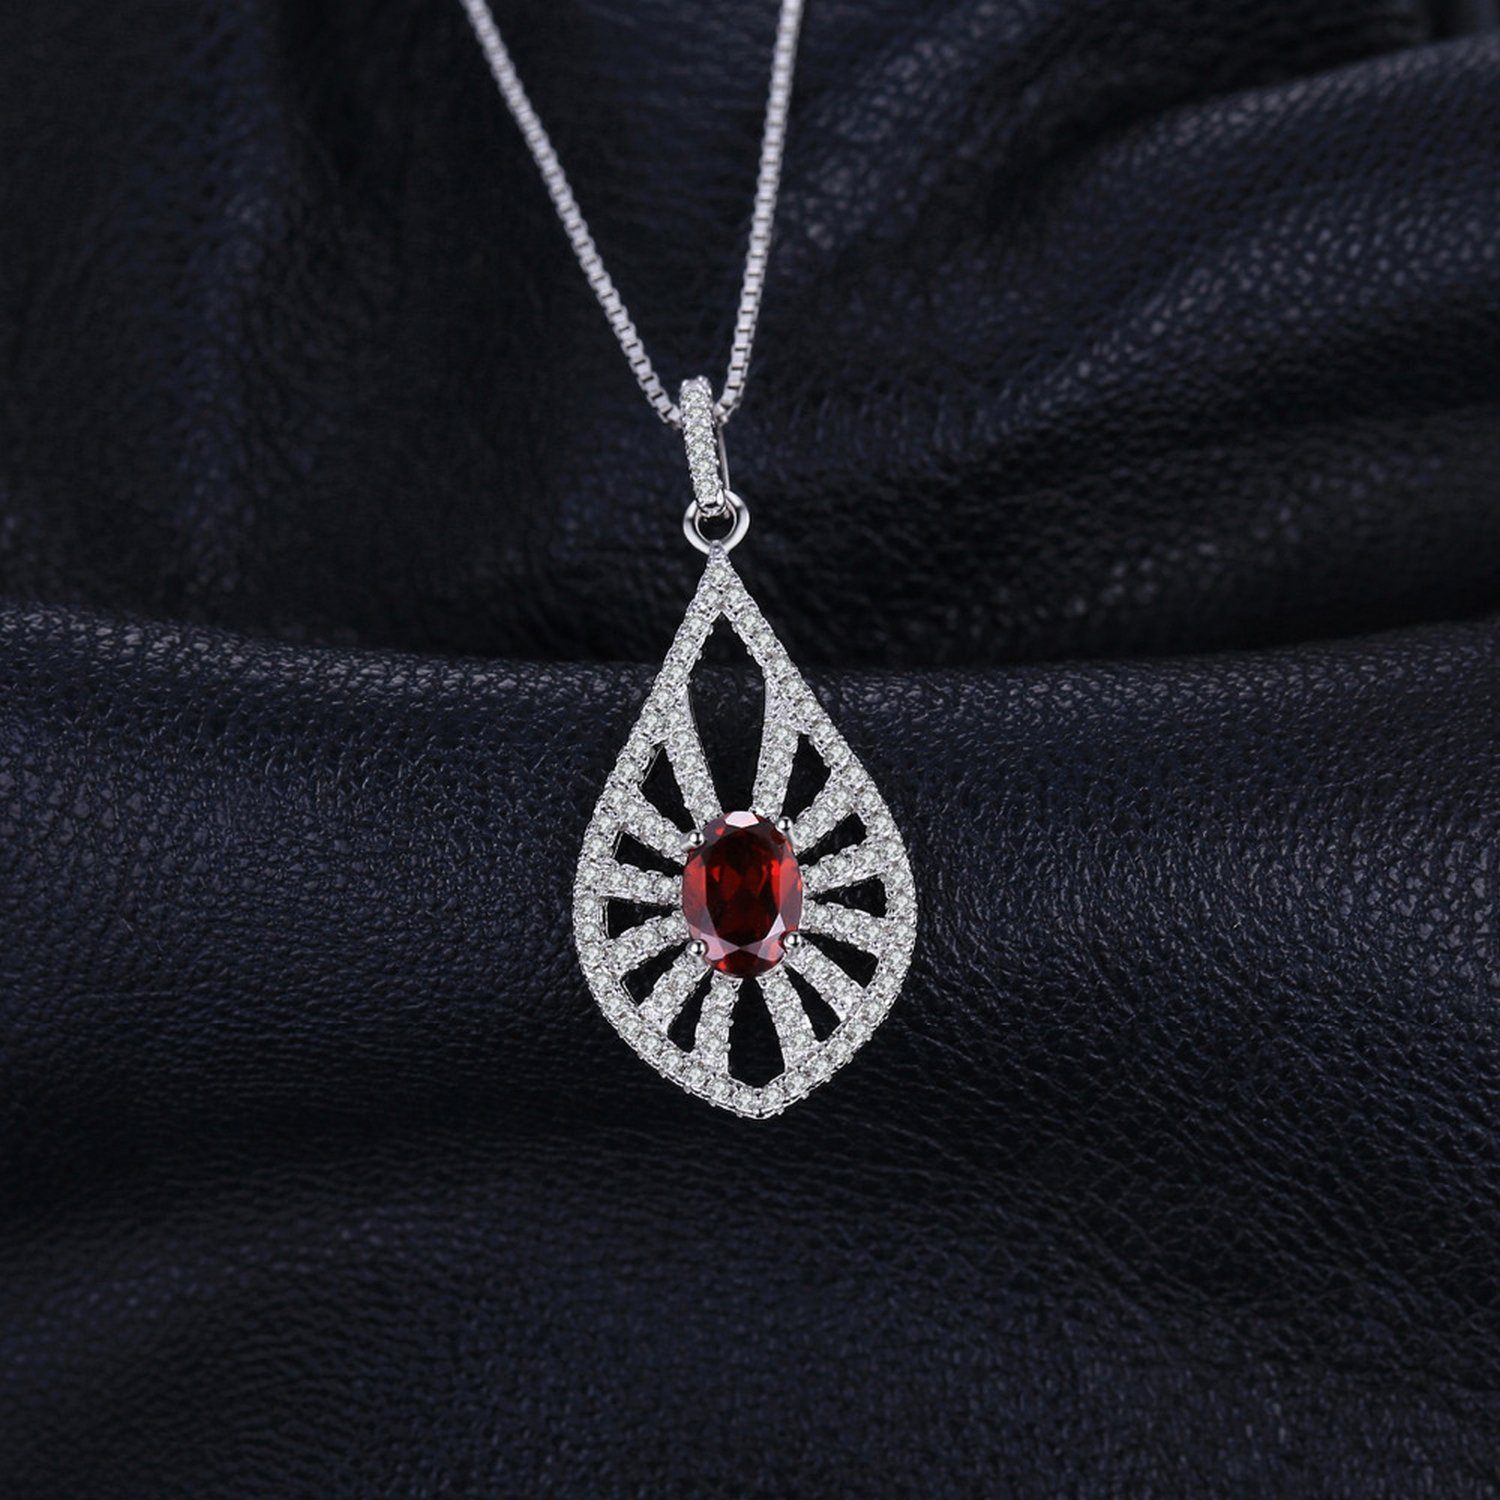 CS-DB Jewelry Silver Carved 1.46ct Genuine Garnet Chain Charm Pendants Necklaces